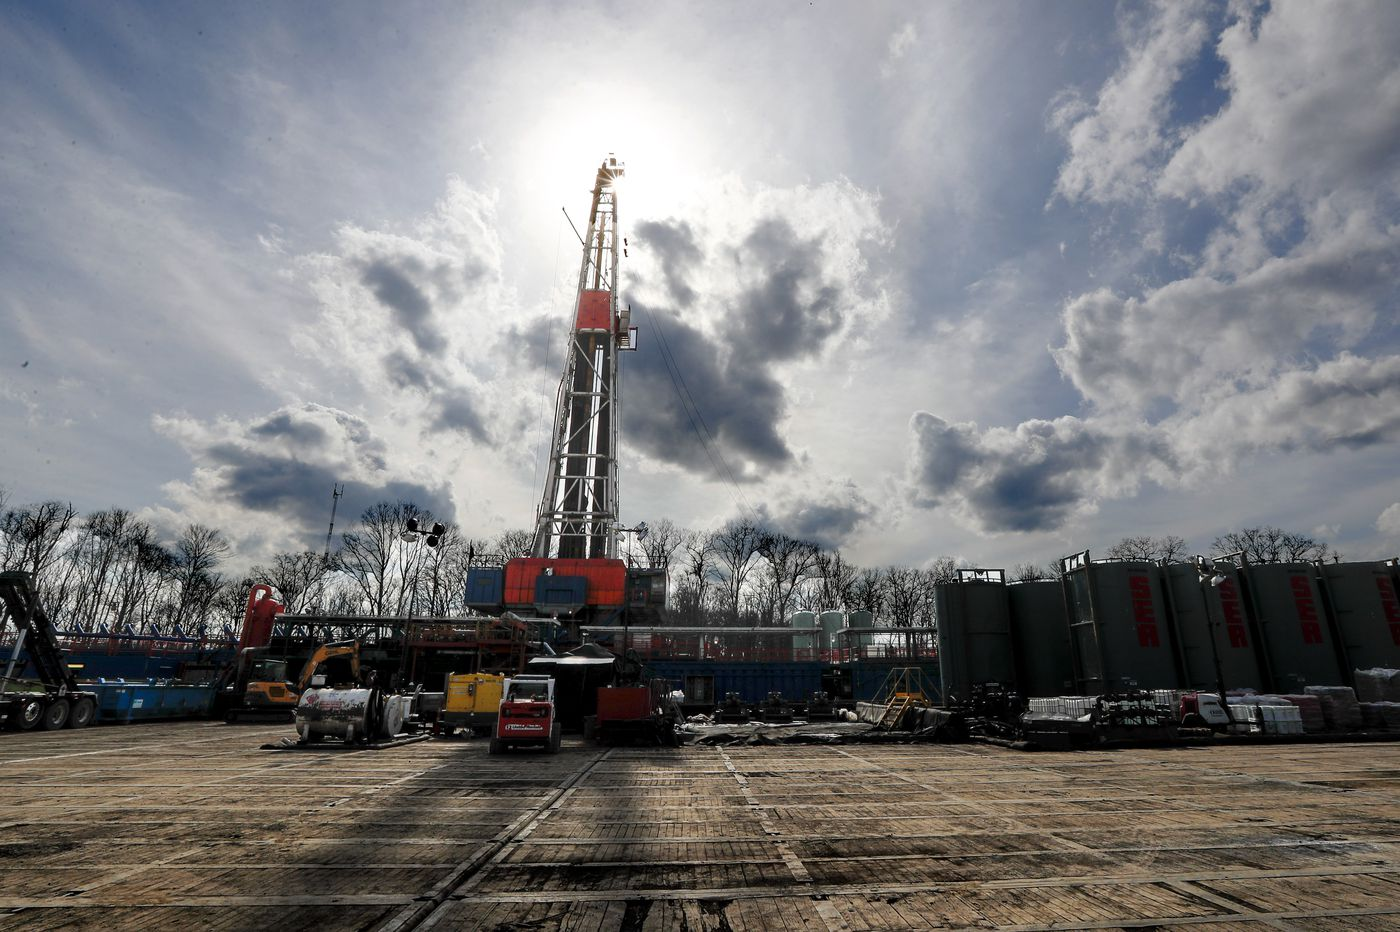 Pennsylvania should keep fracking and oil as pro-energy policies | Opinion